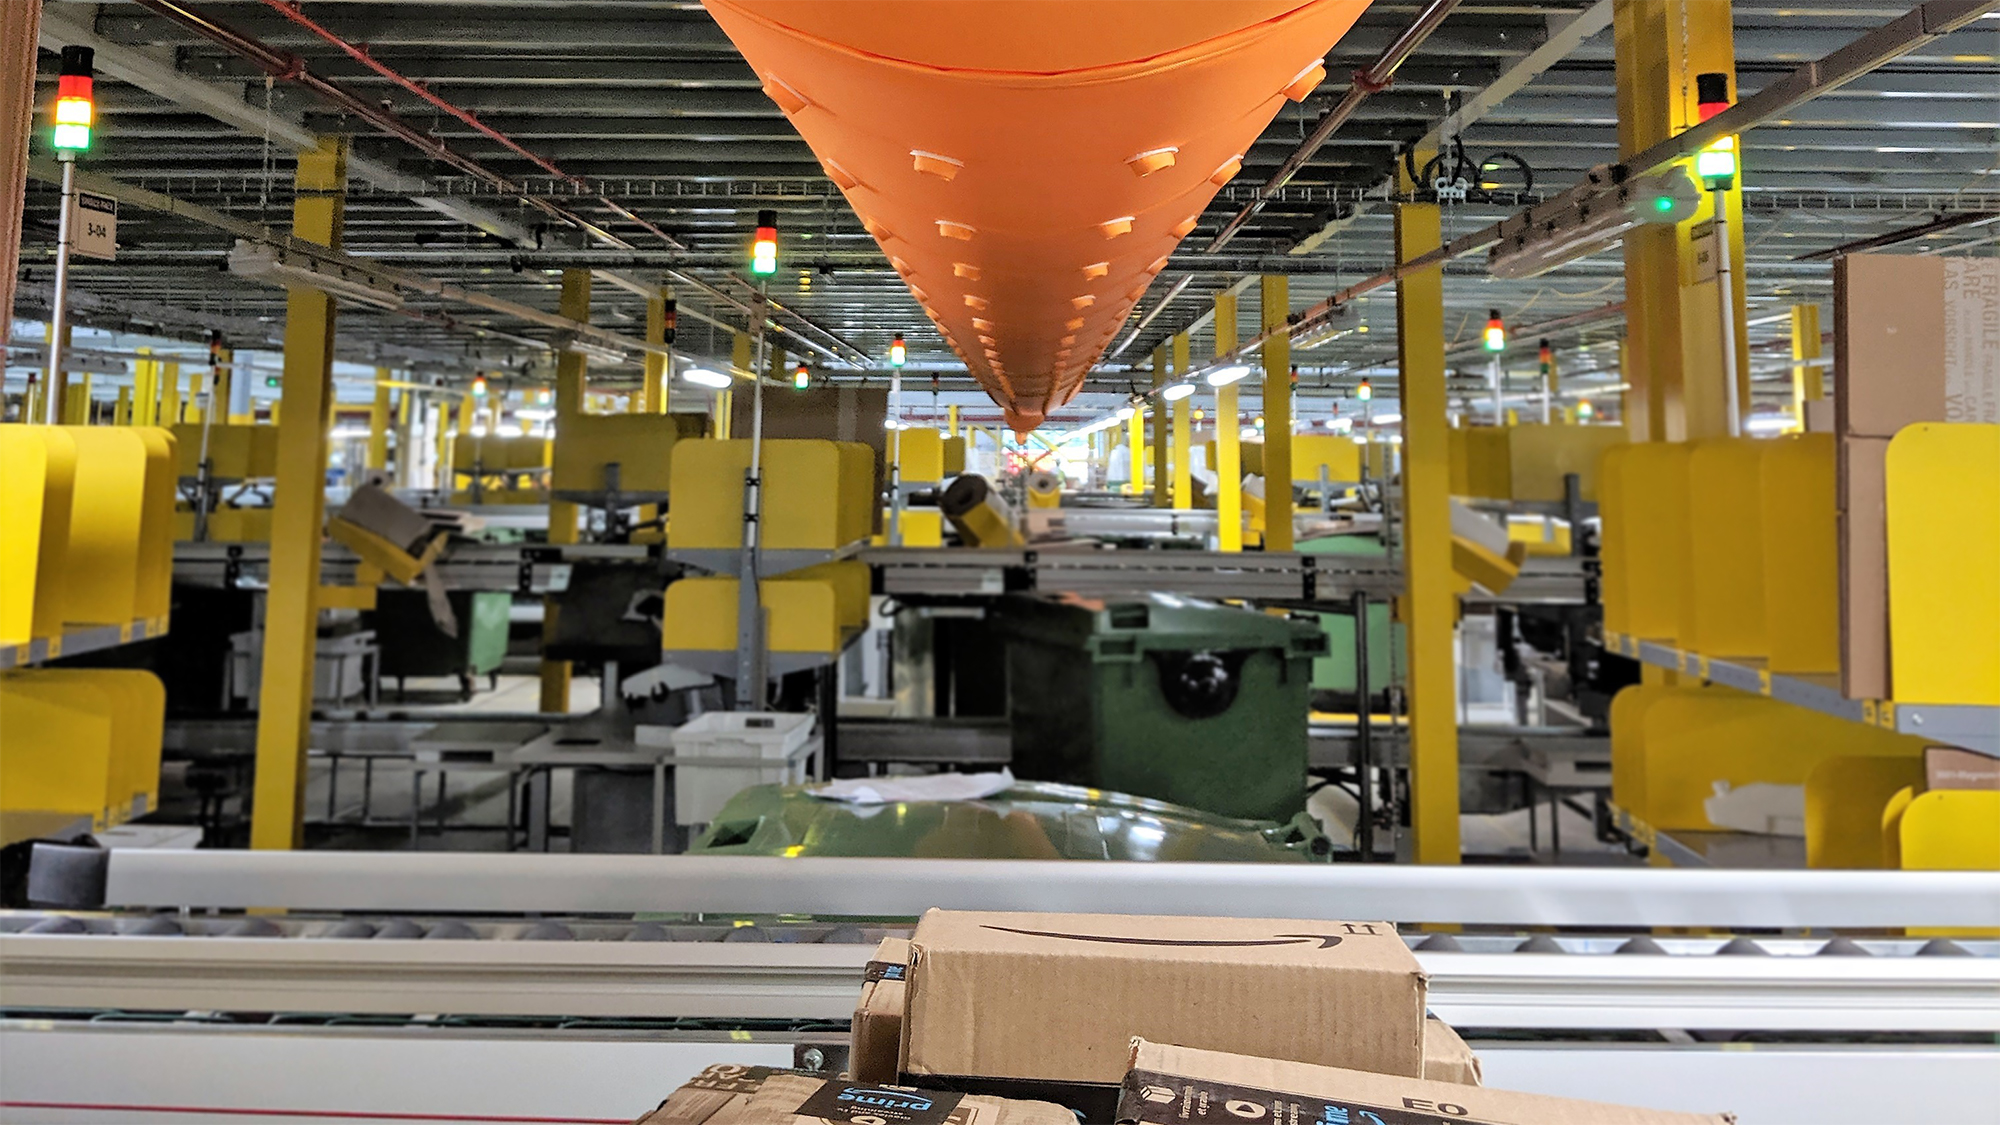 Prihoda fabric duct with nozzles at Amazon Rugby fulfilment centre